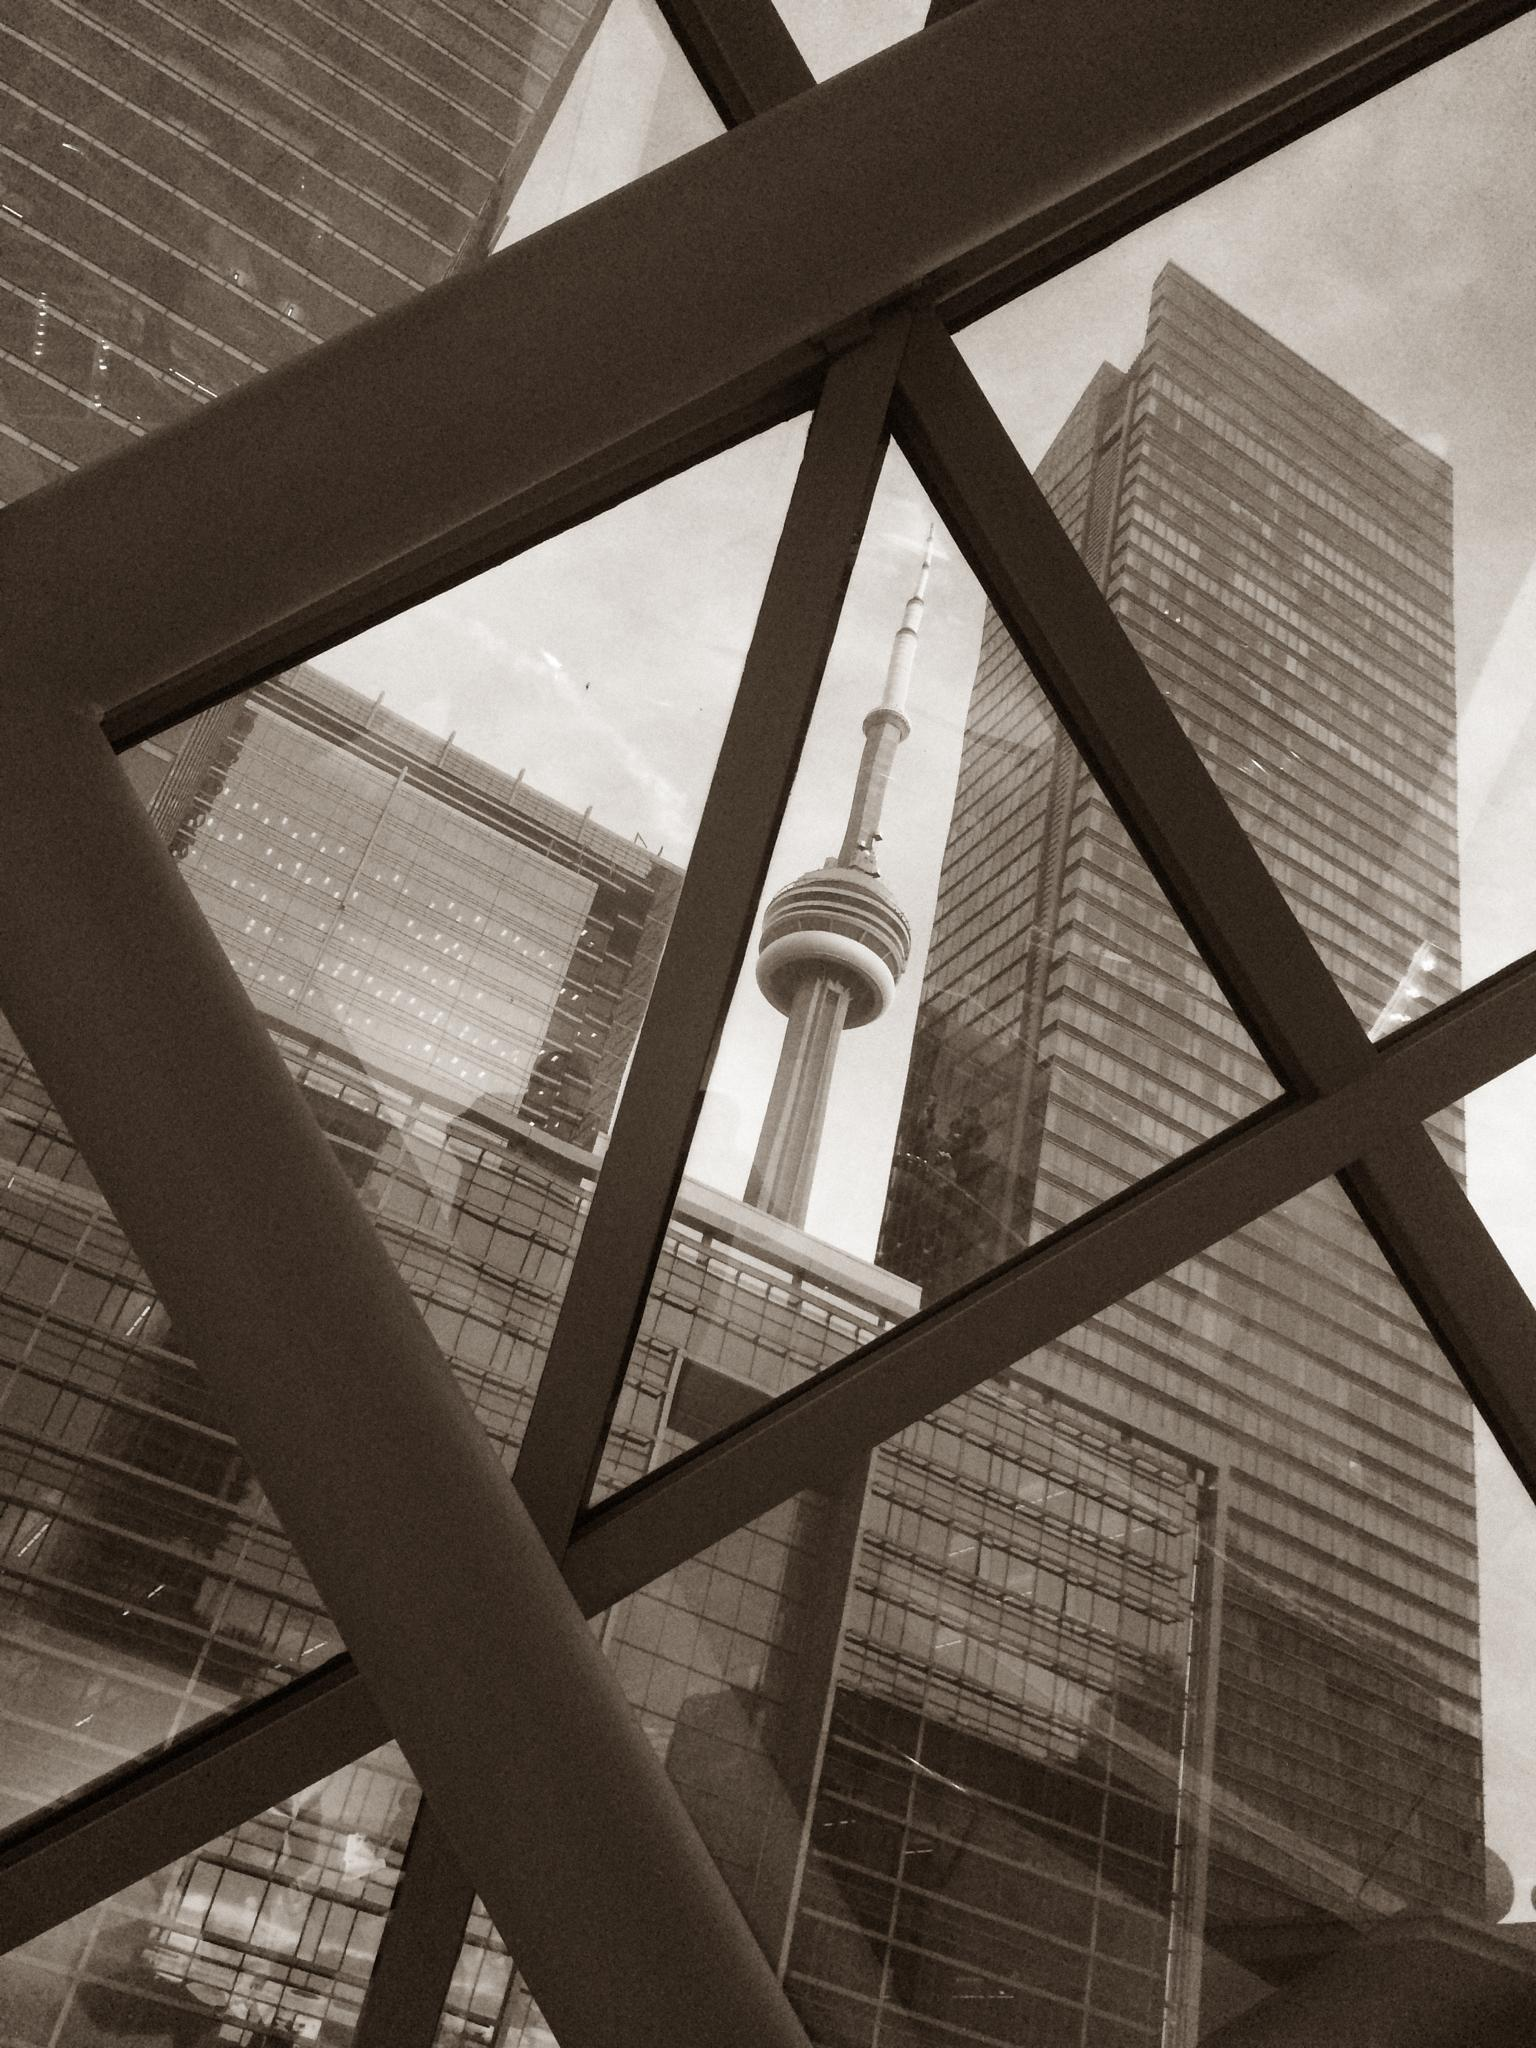 CN Tower by delmotte